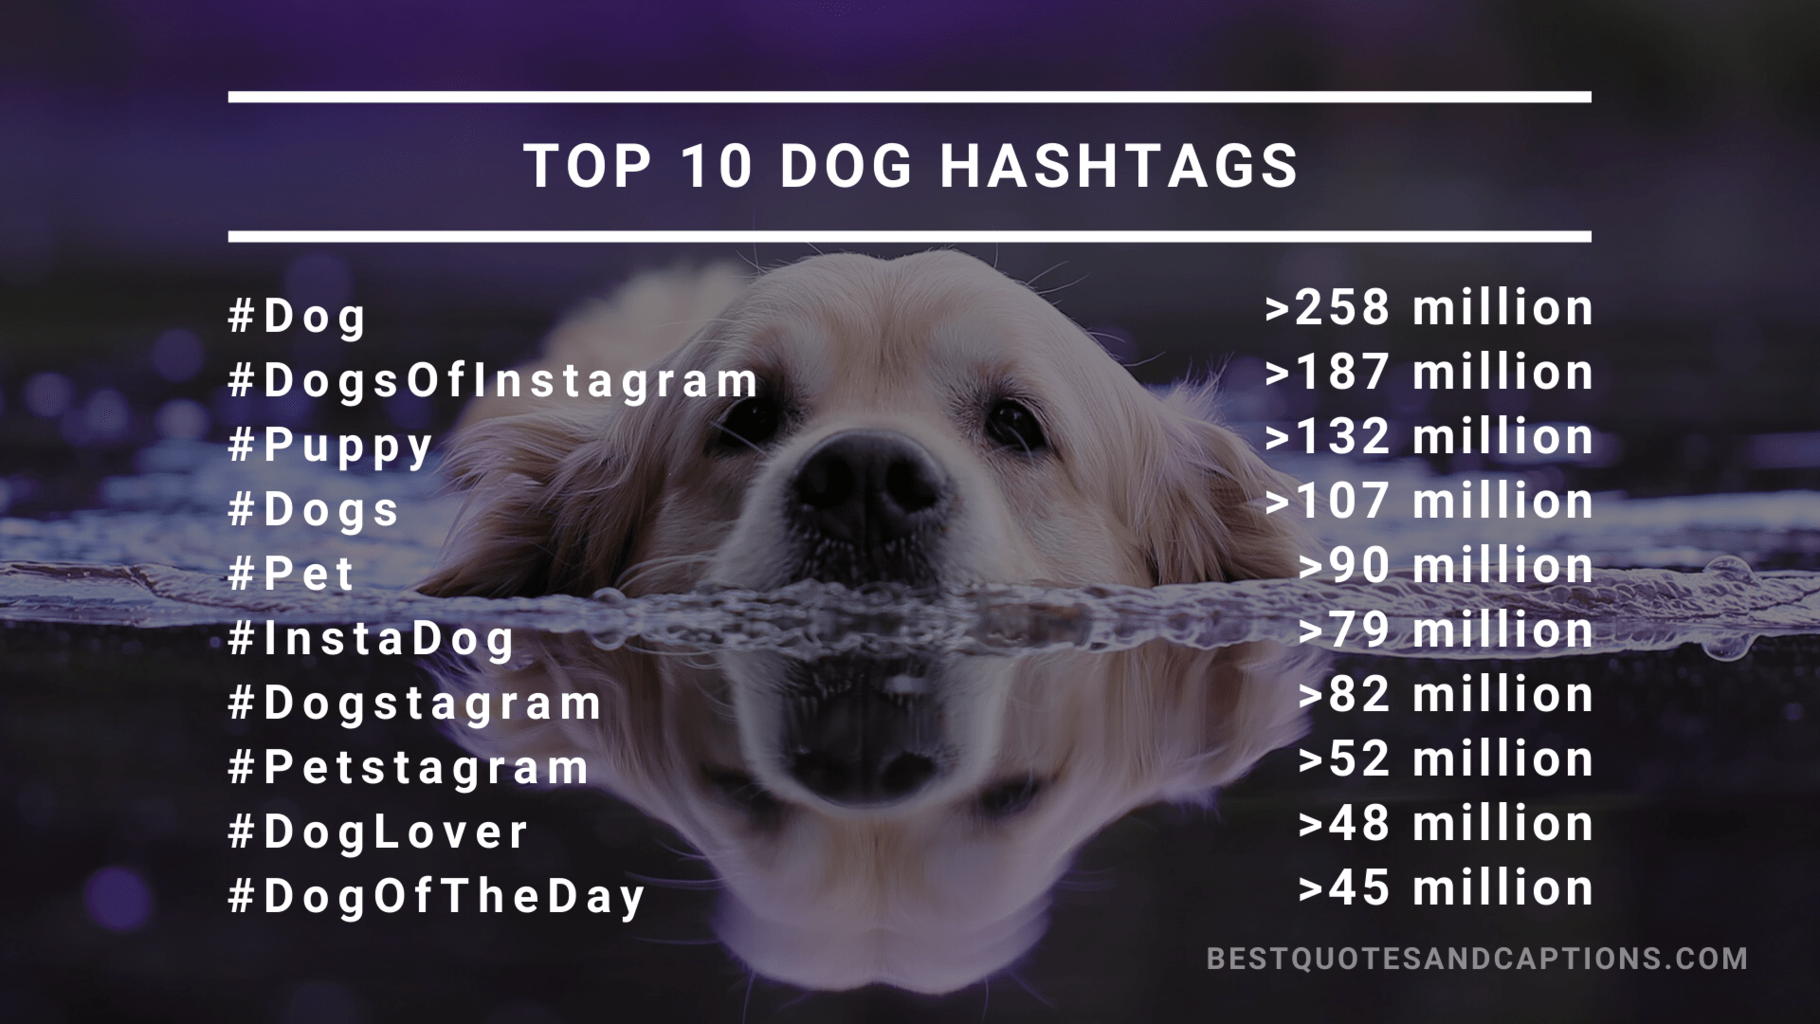 Top 10 dog hashtags